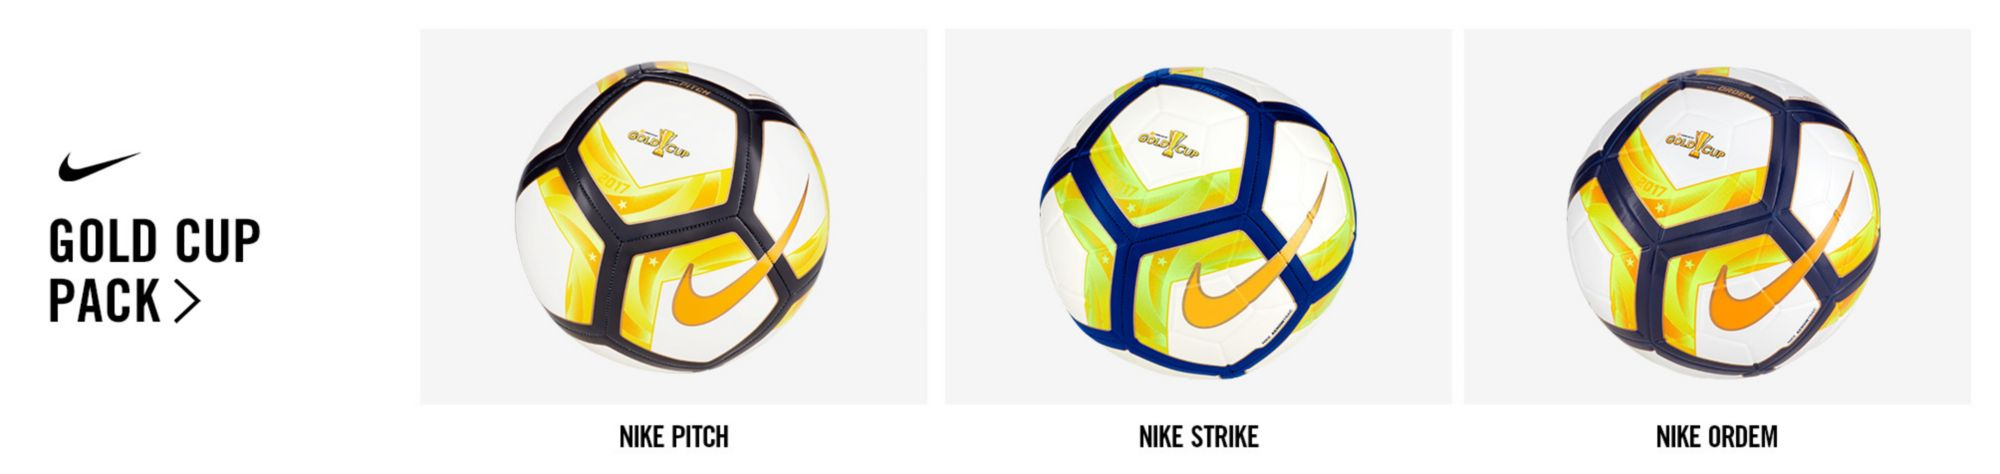 Nike Gold Cup 2017 Soccer Balls